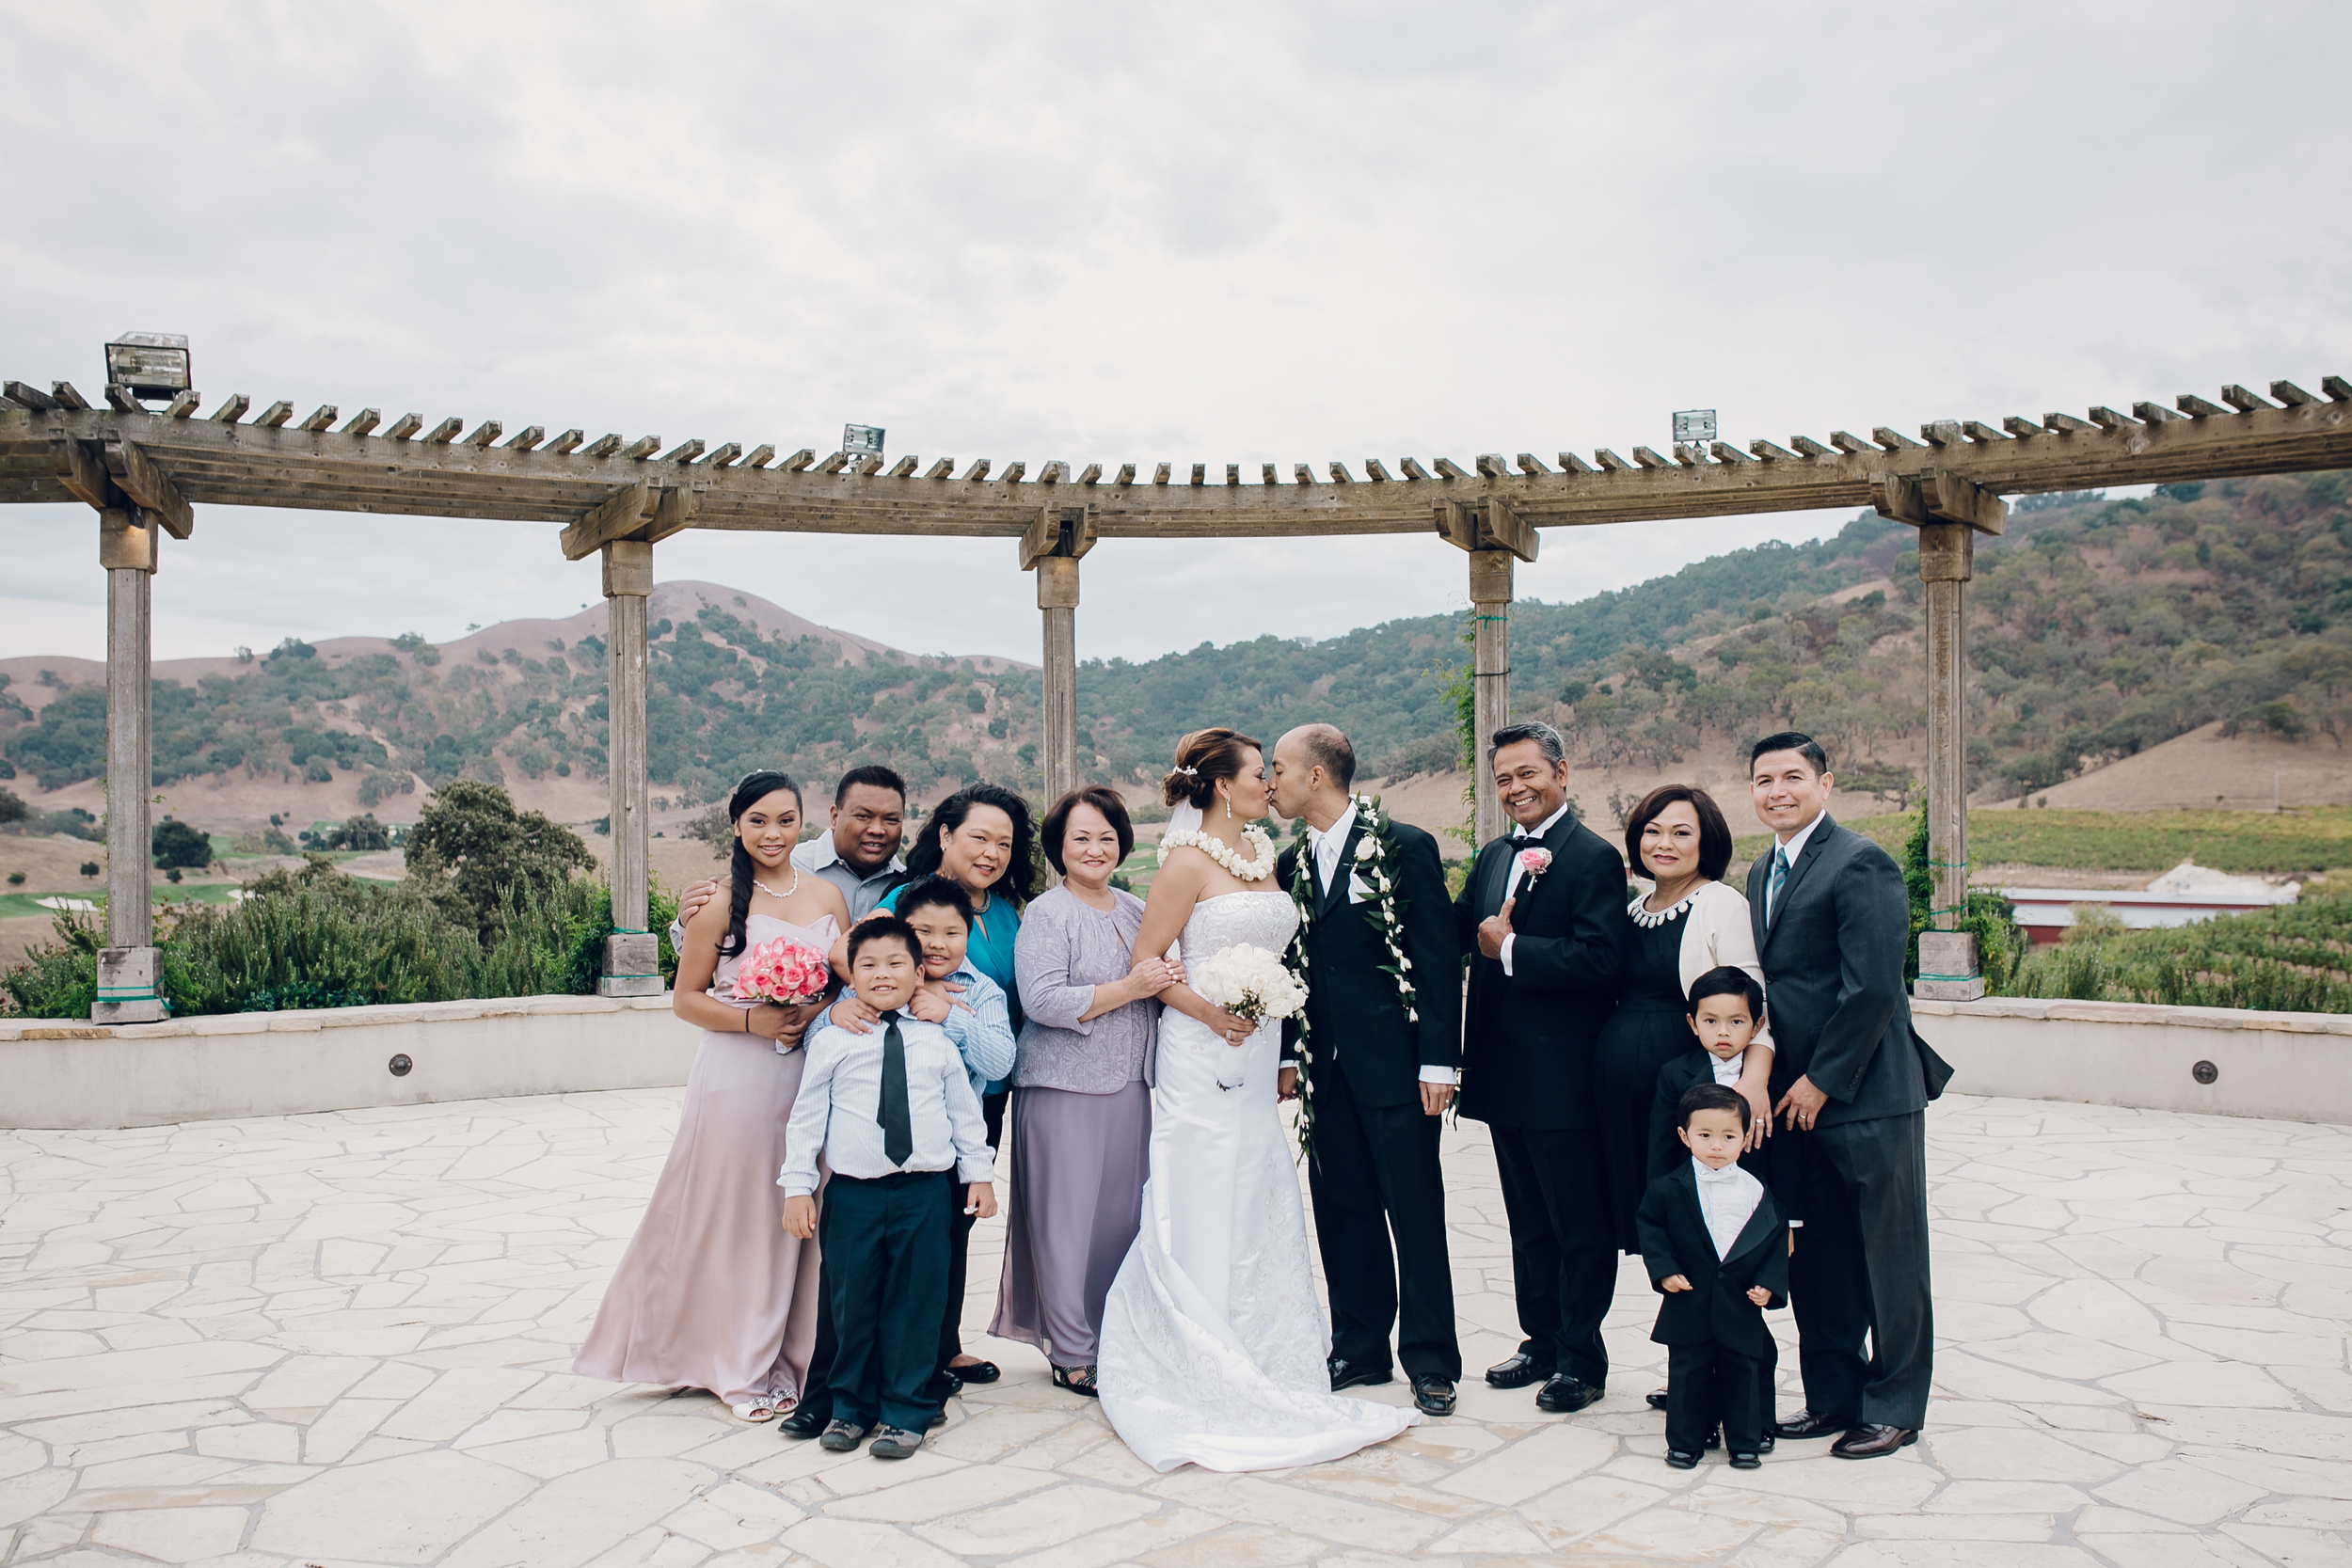 Shiela + Lester's Wedding 9-30-15 800.jpg